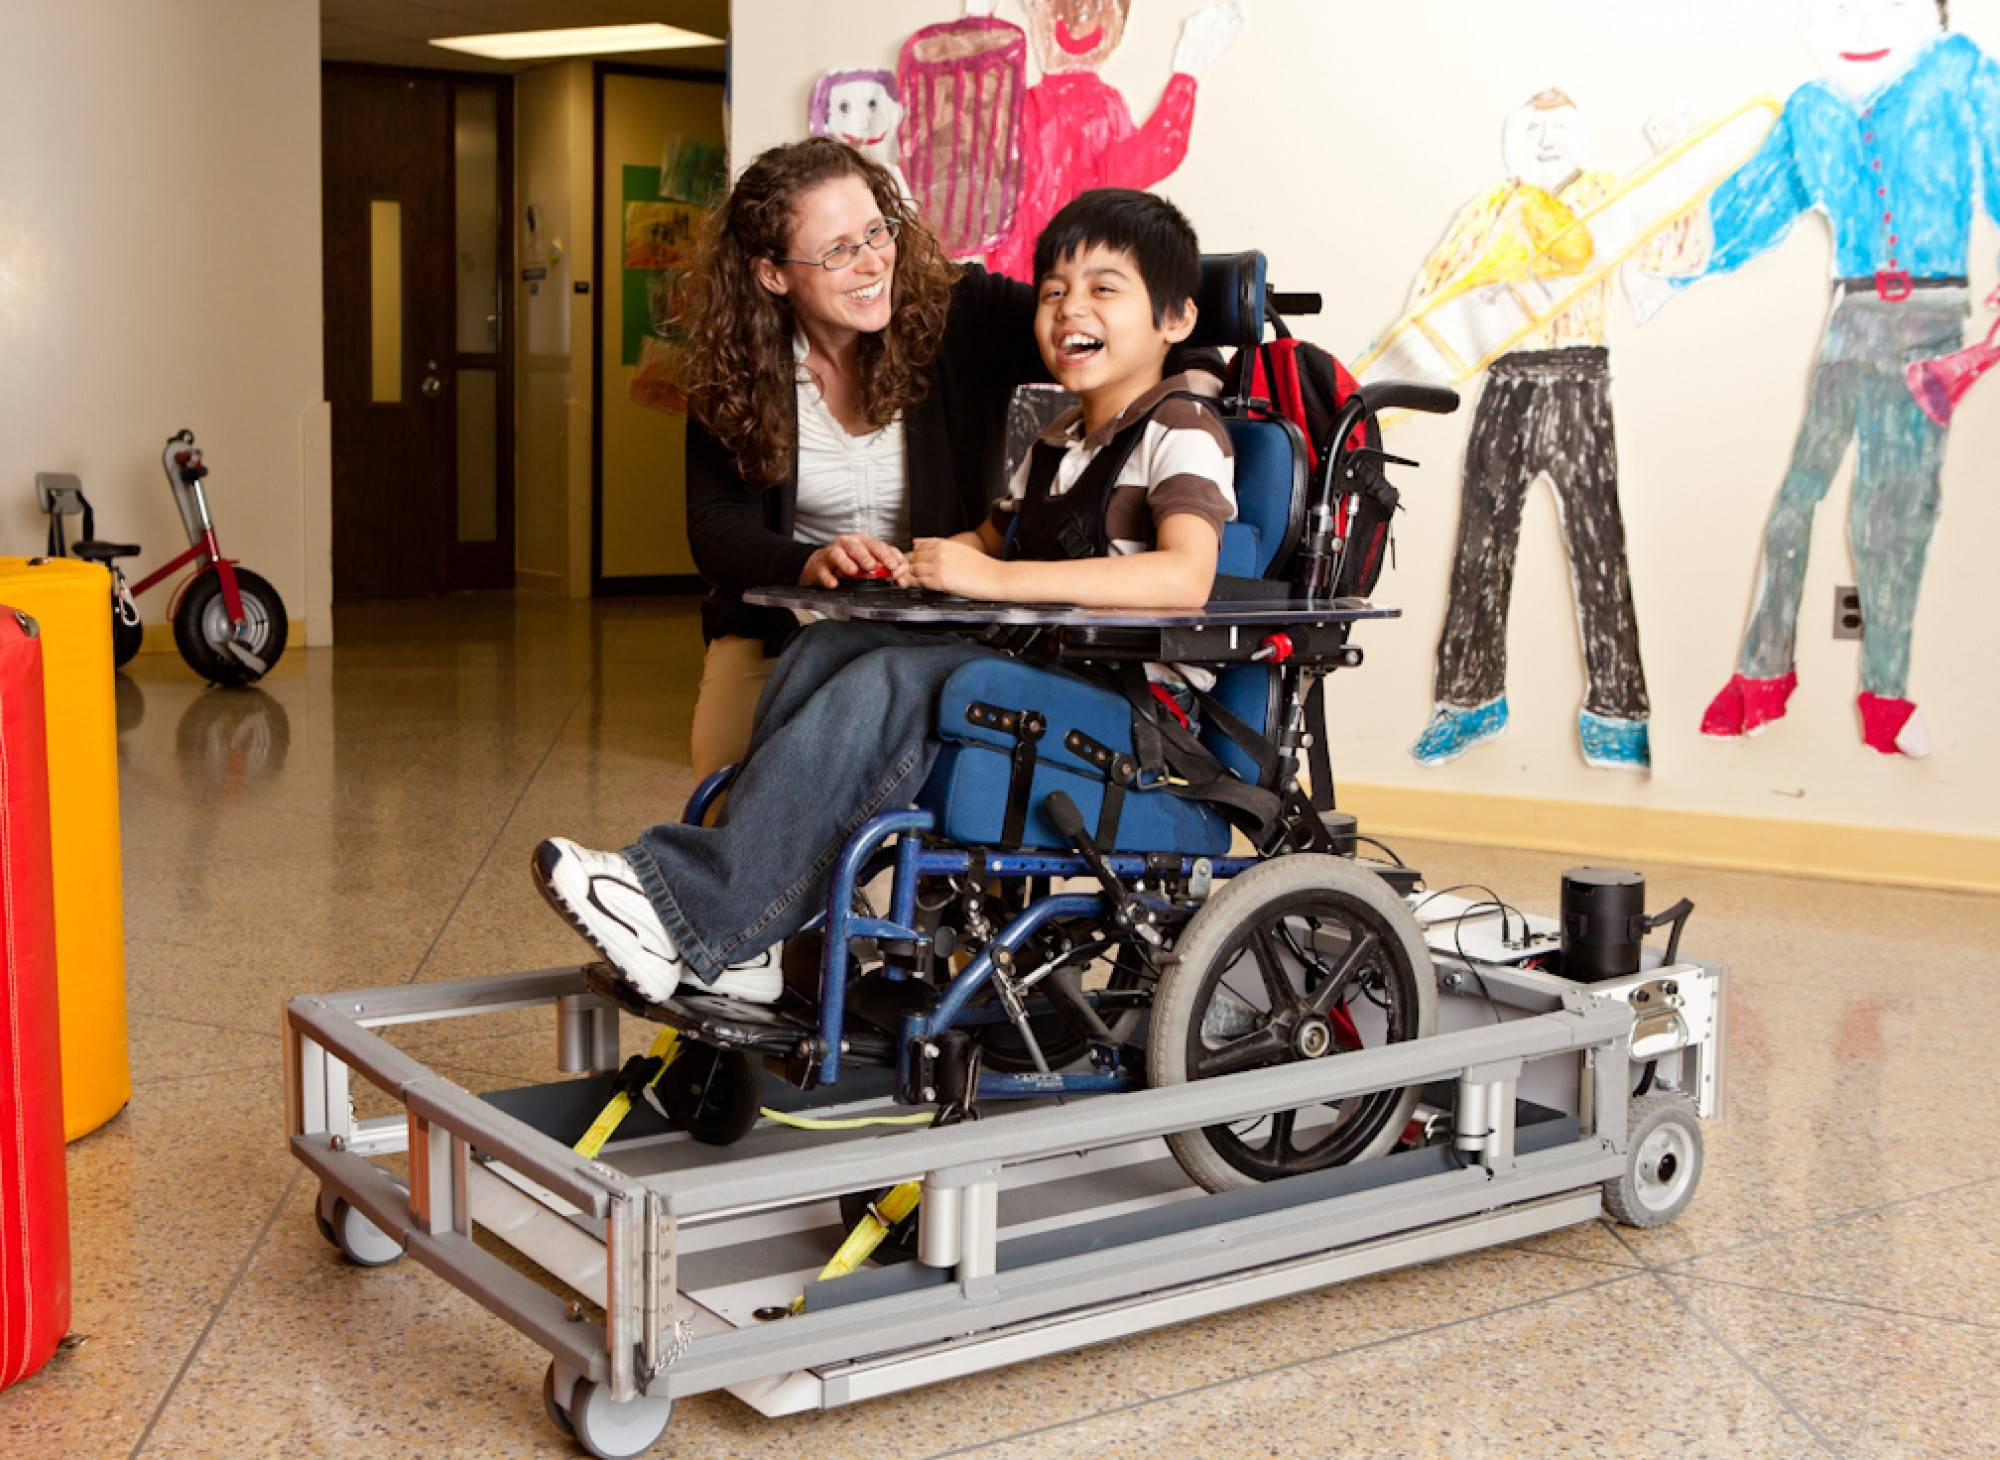 a woman kneels next to a child in a mobility aid